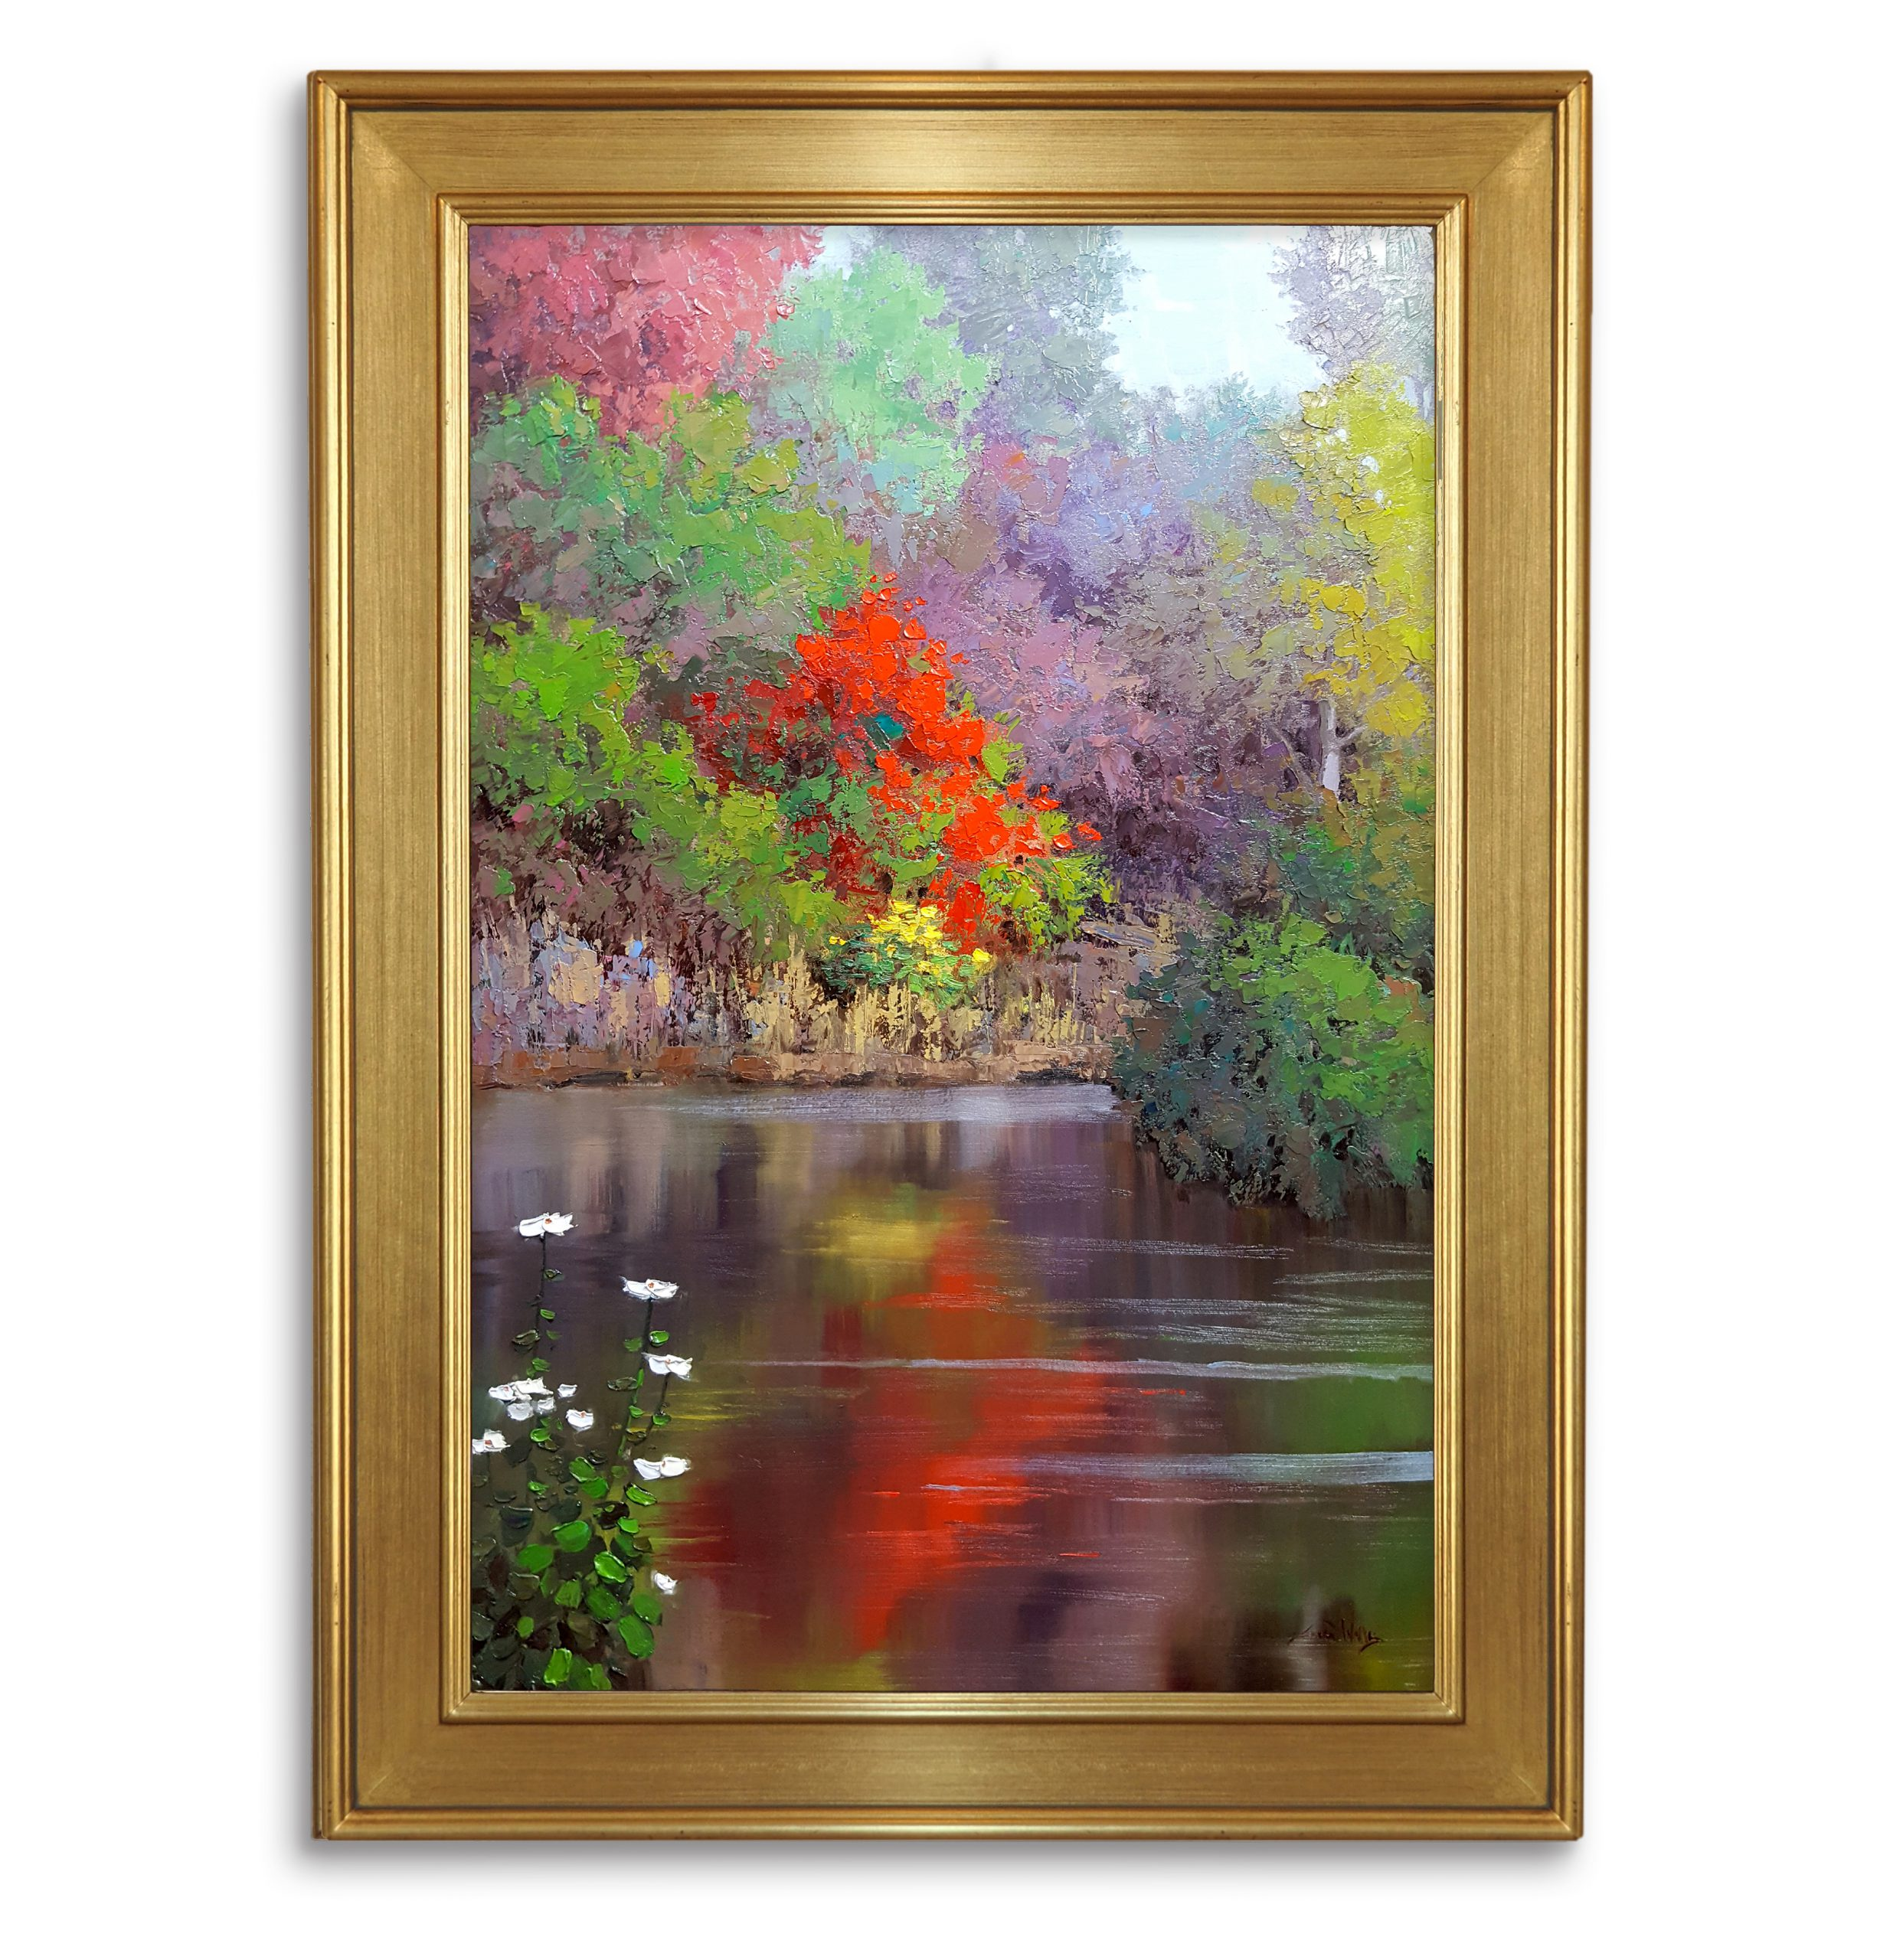 Sean Wallis - Reflecting Elegance